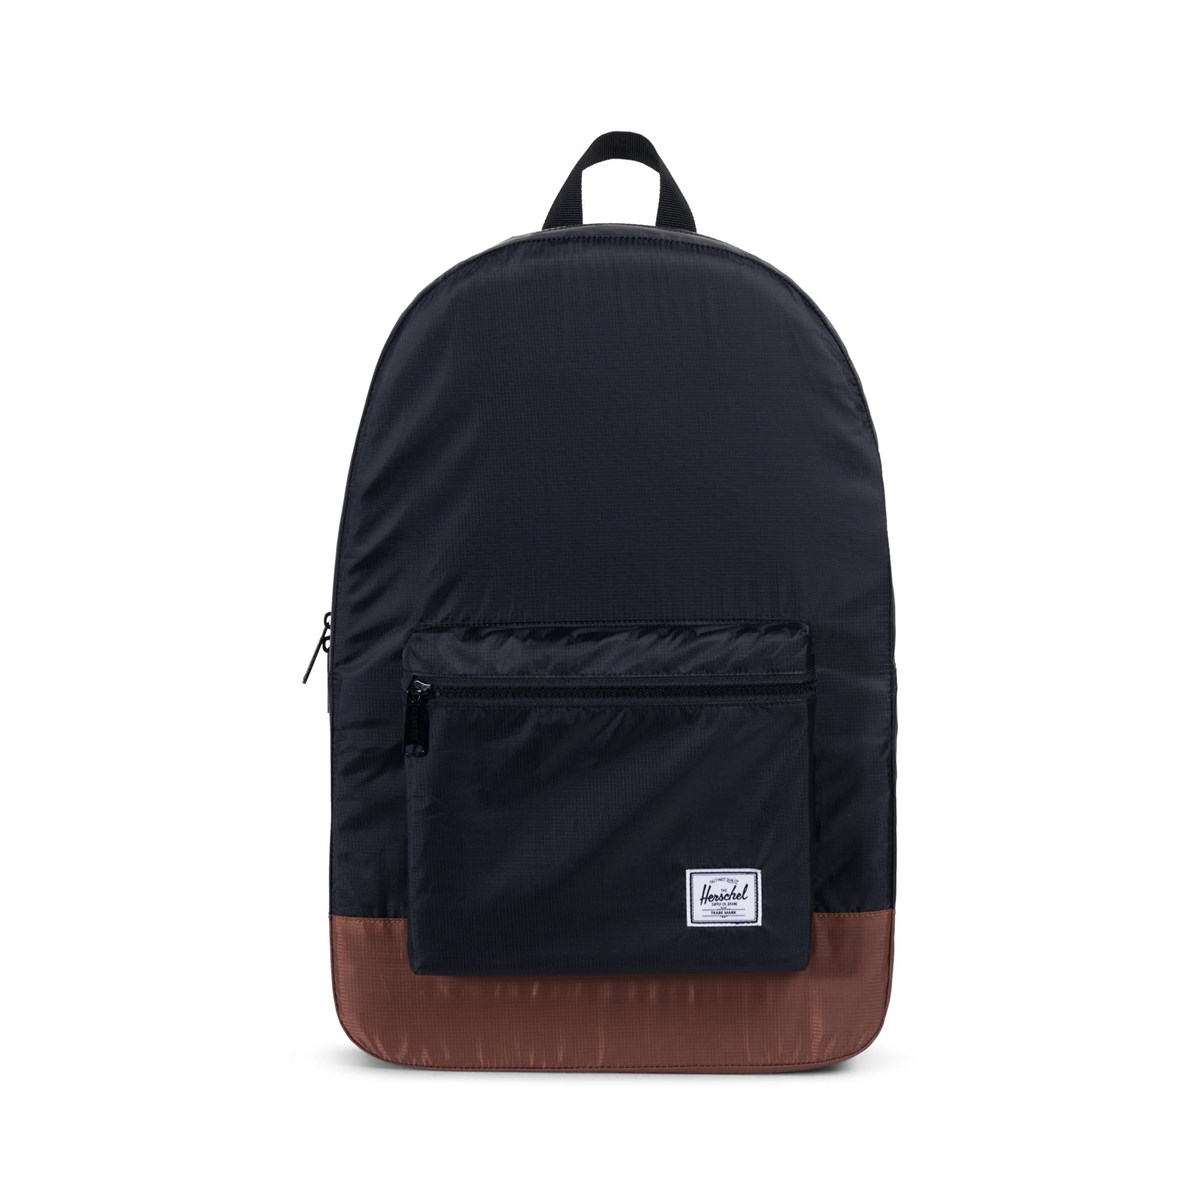 Daypack Backpack in Black and Tan